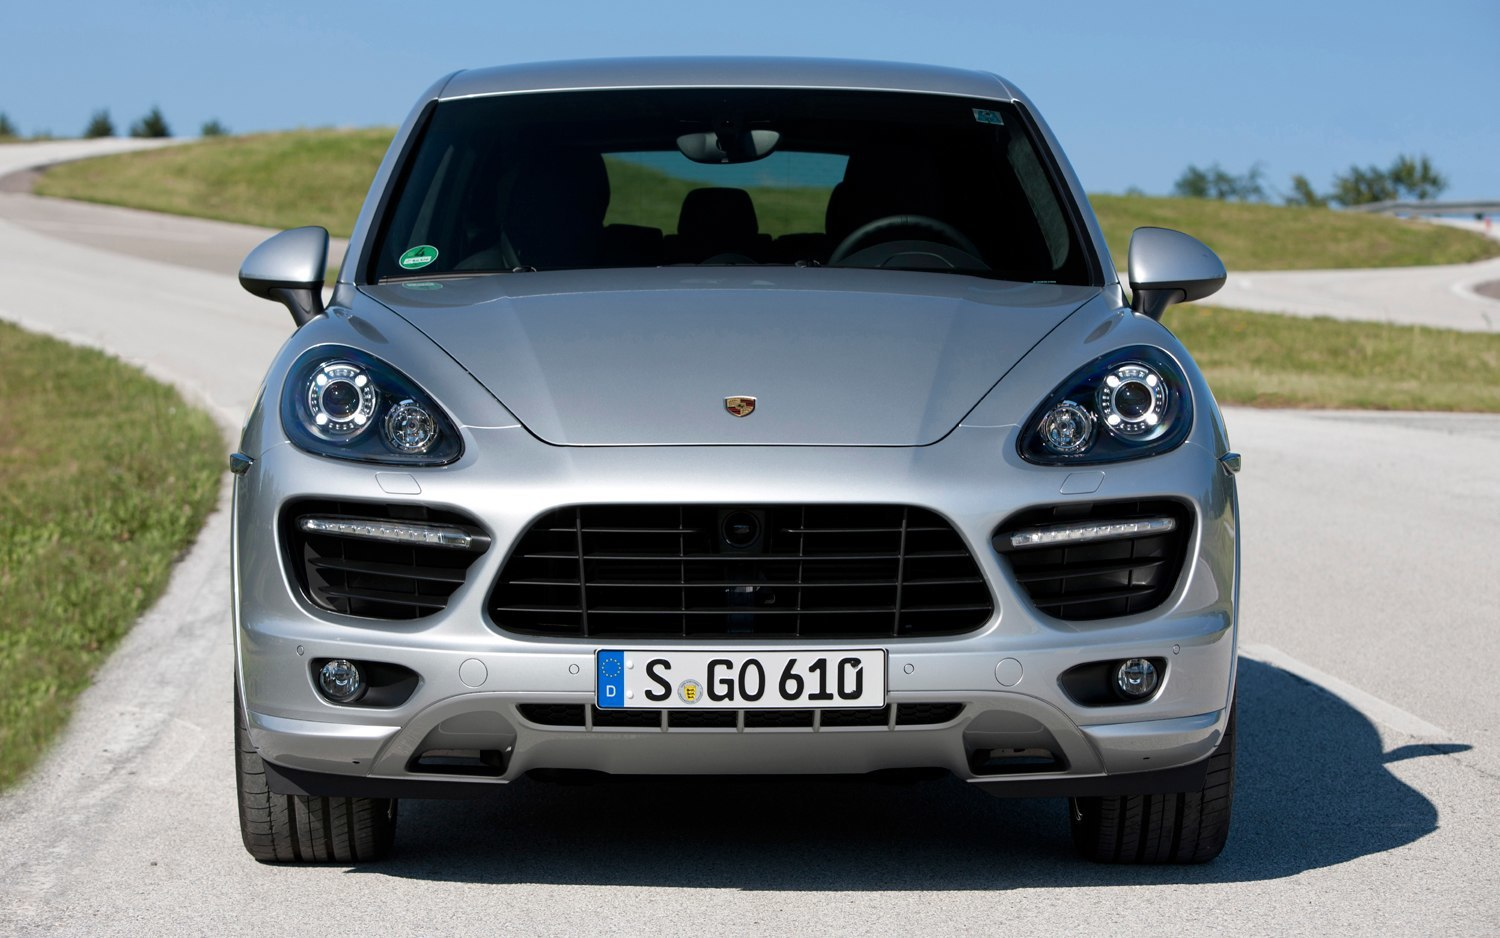 new for 2014 porsche cayenne turbo s tops 8 strong cayenne lineup in u s pricing and style. Black Bedroom Furniture Sets. Home Design Ideas